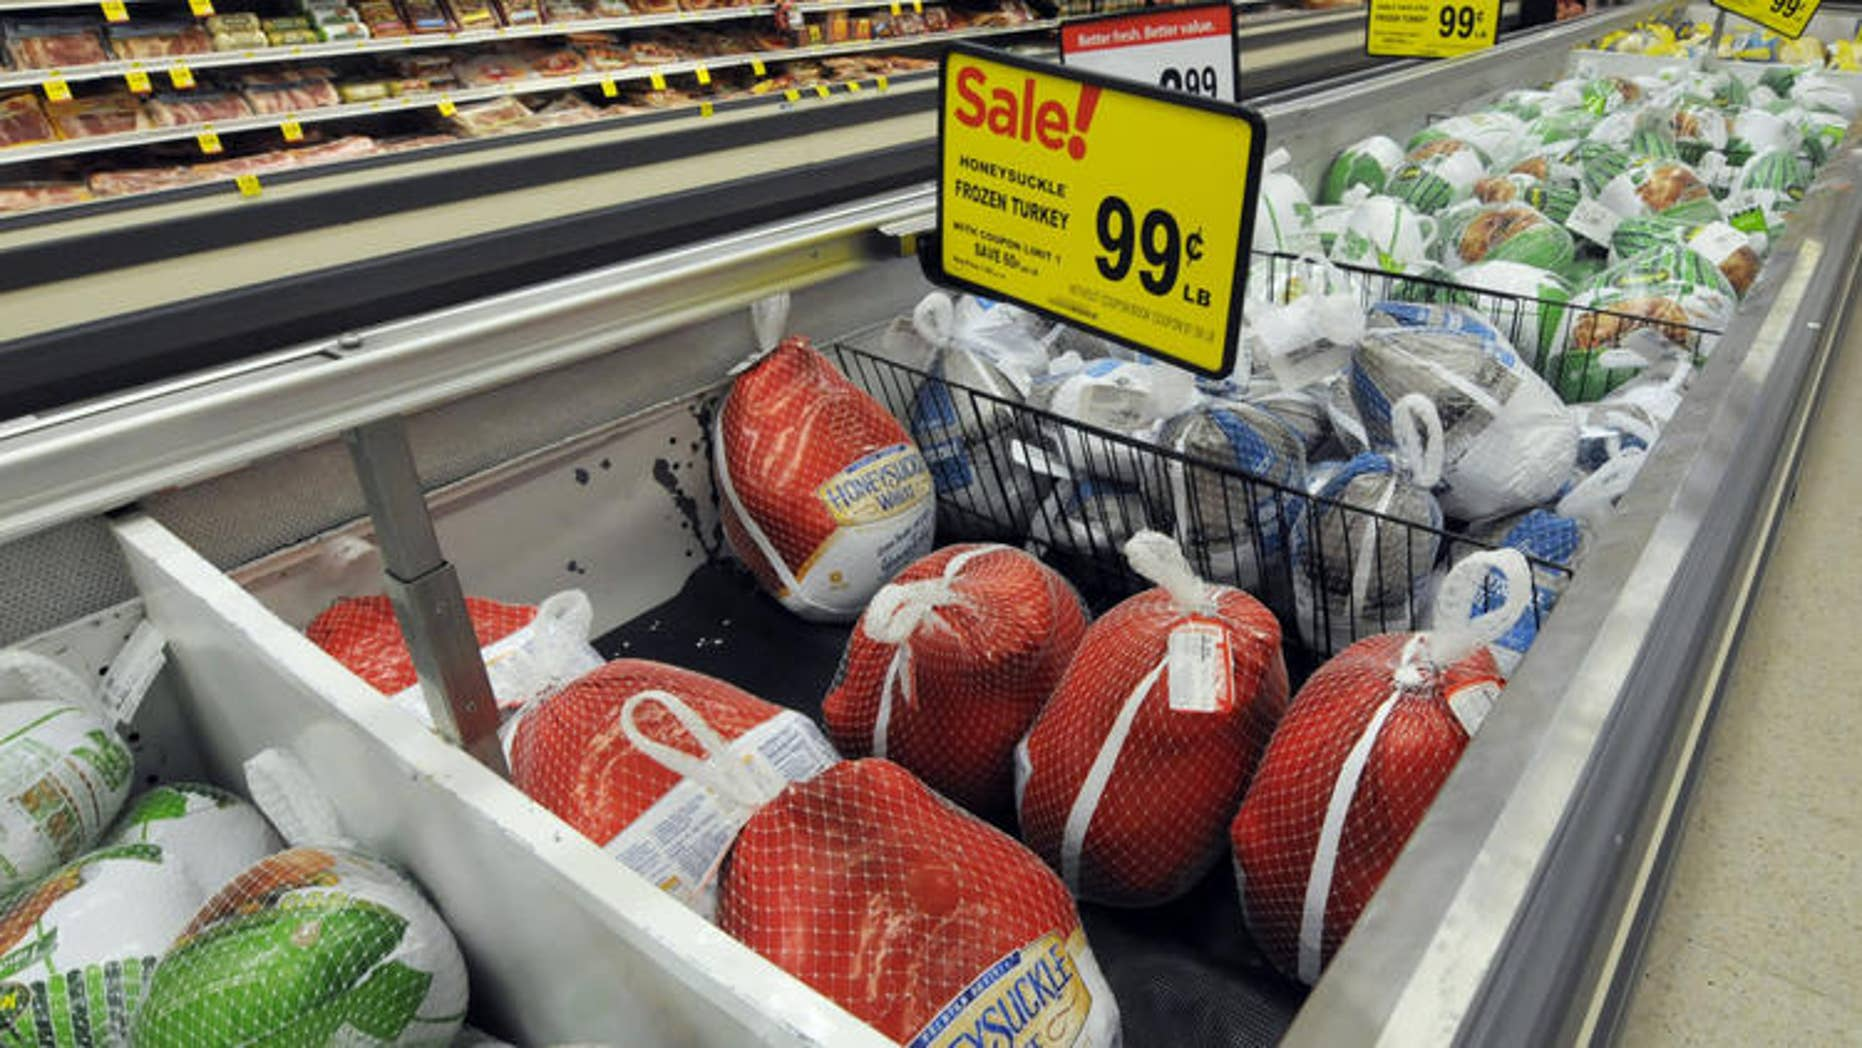 Frozen turkeys are likely to be much less expensive than fresh birds this Thanksgiving.